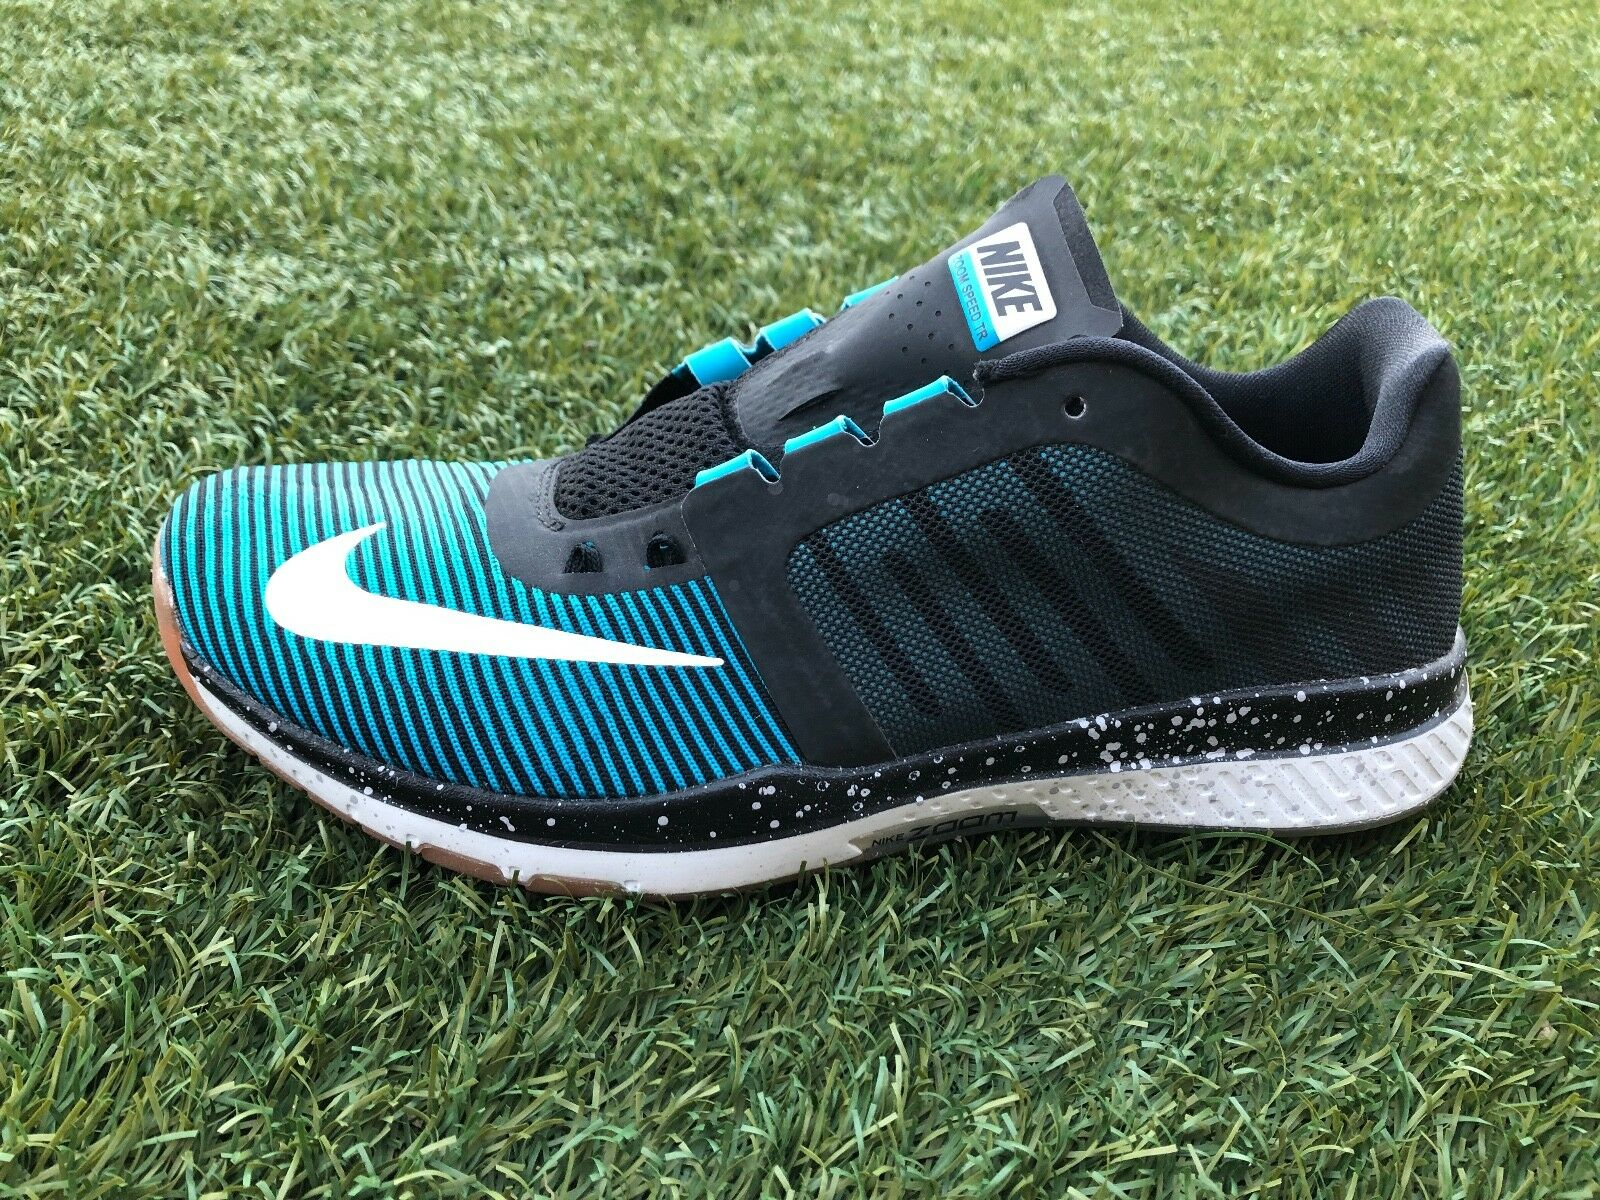 f382482882c196 ... Men s Nike Zoom Speed TR3 TRAINING shoes bluee bluee bluee and Black  804401 414 Size 10.5 ...